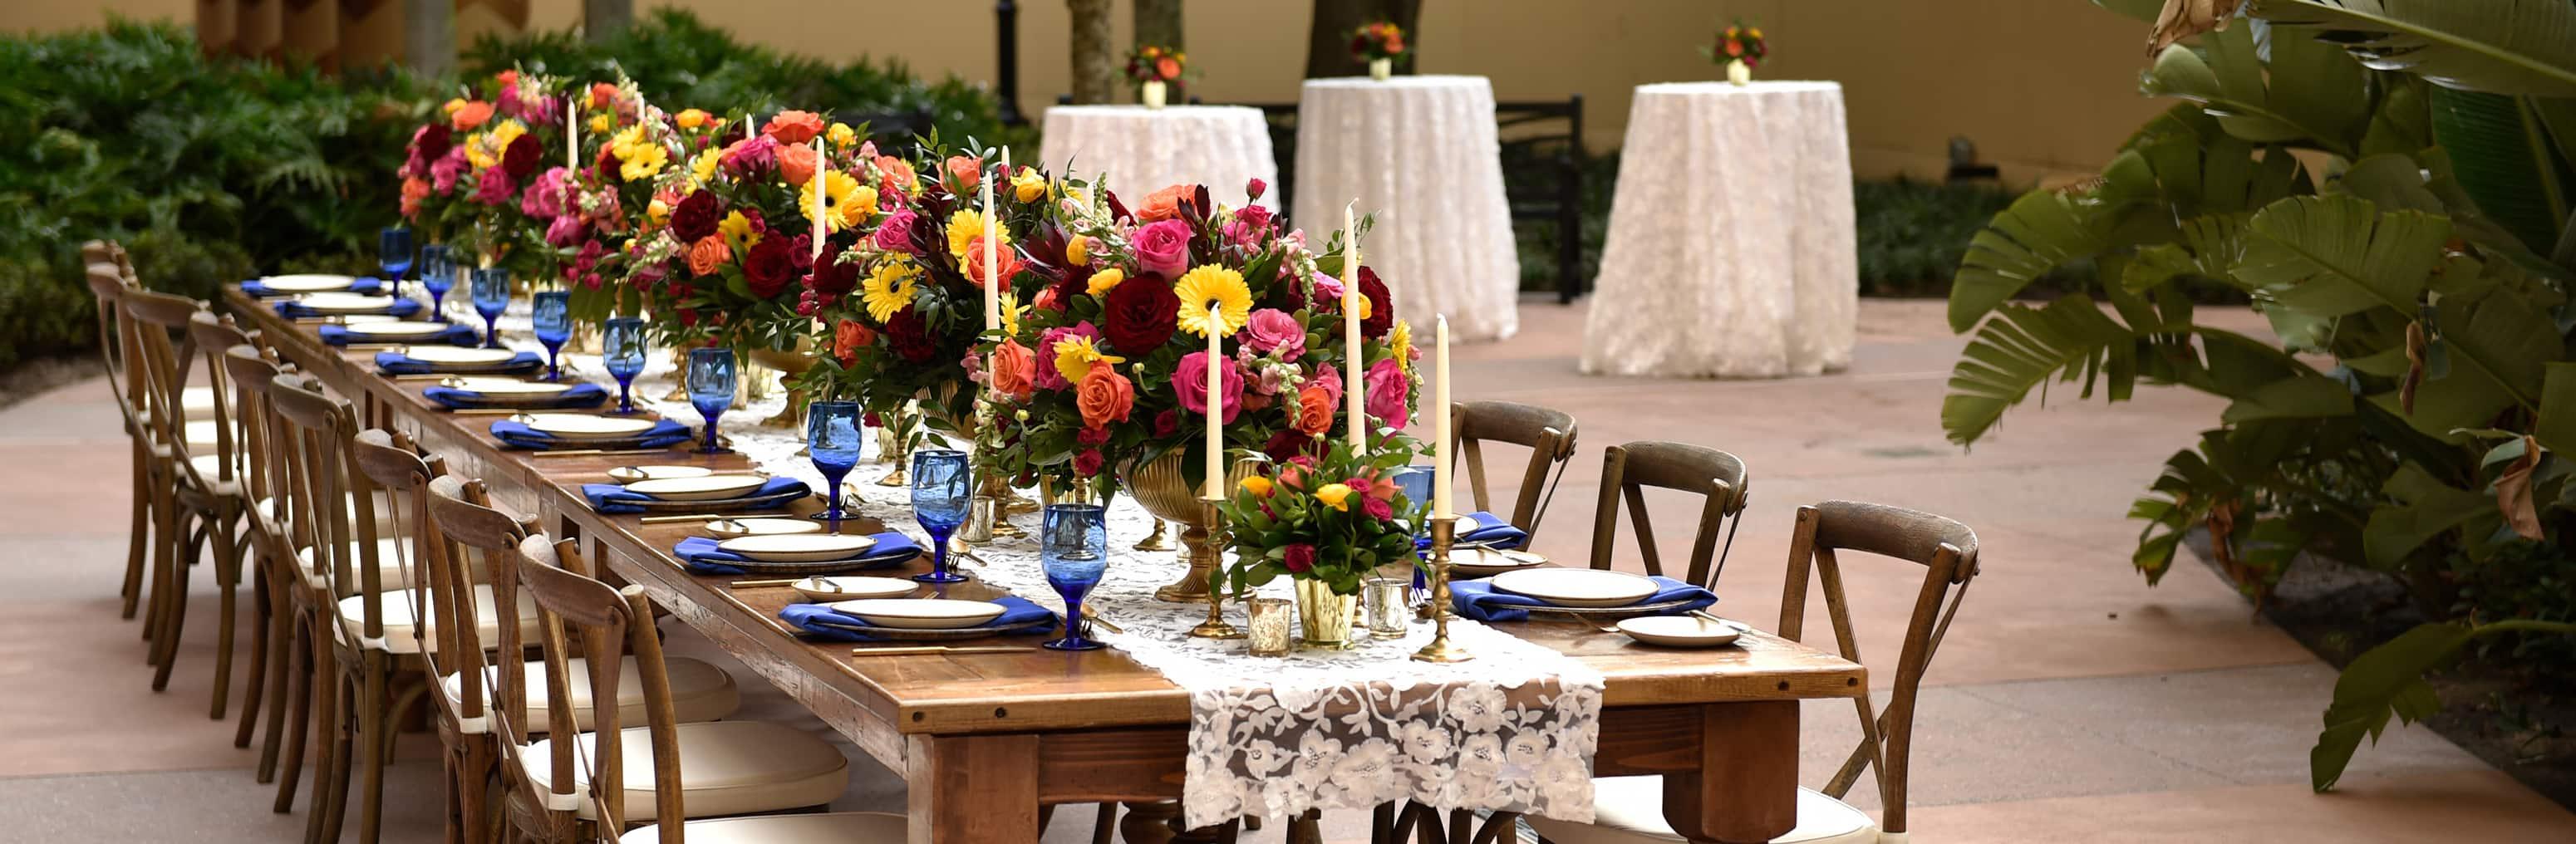 A long table with many place settings on a courtyard with 3 table tops in the background